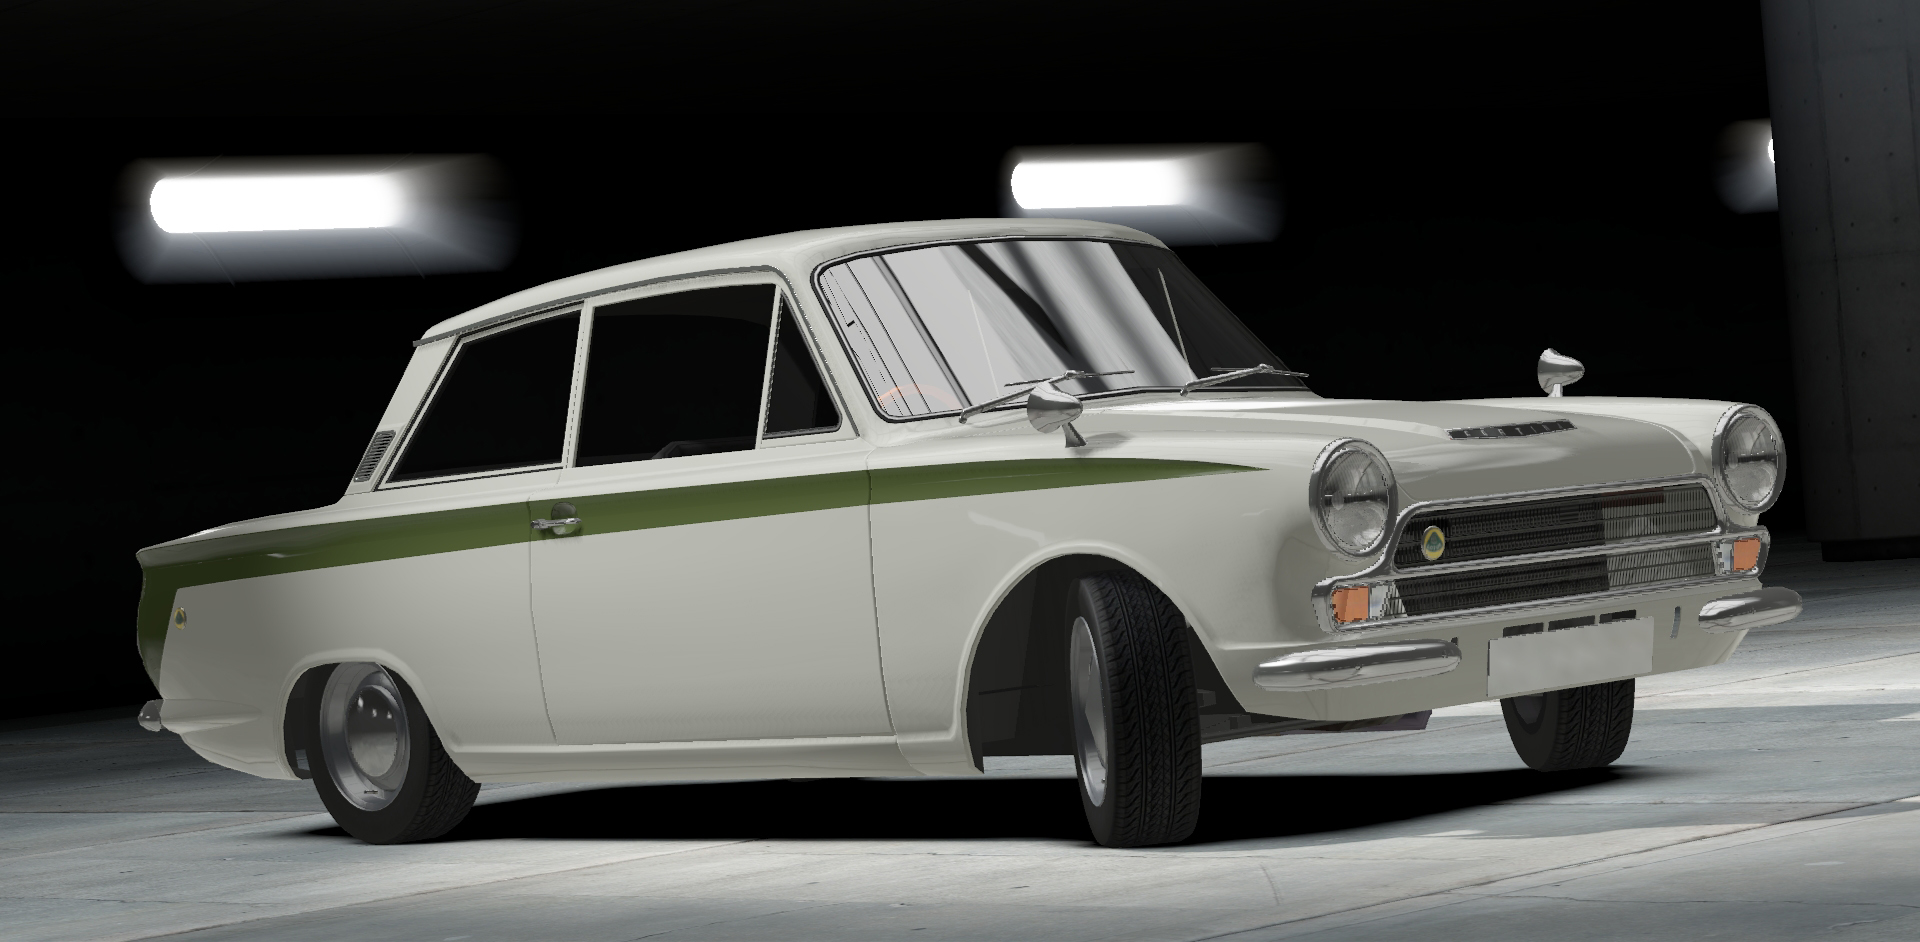 ford lotus cortina need for speed wiki fandom powered by wikia